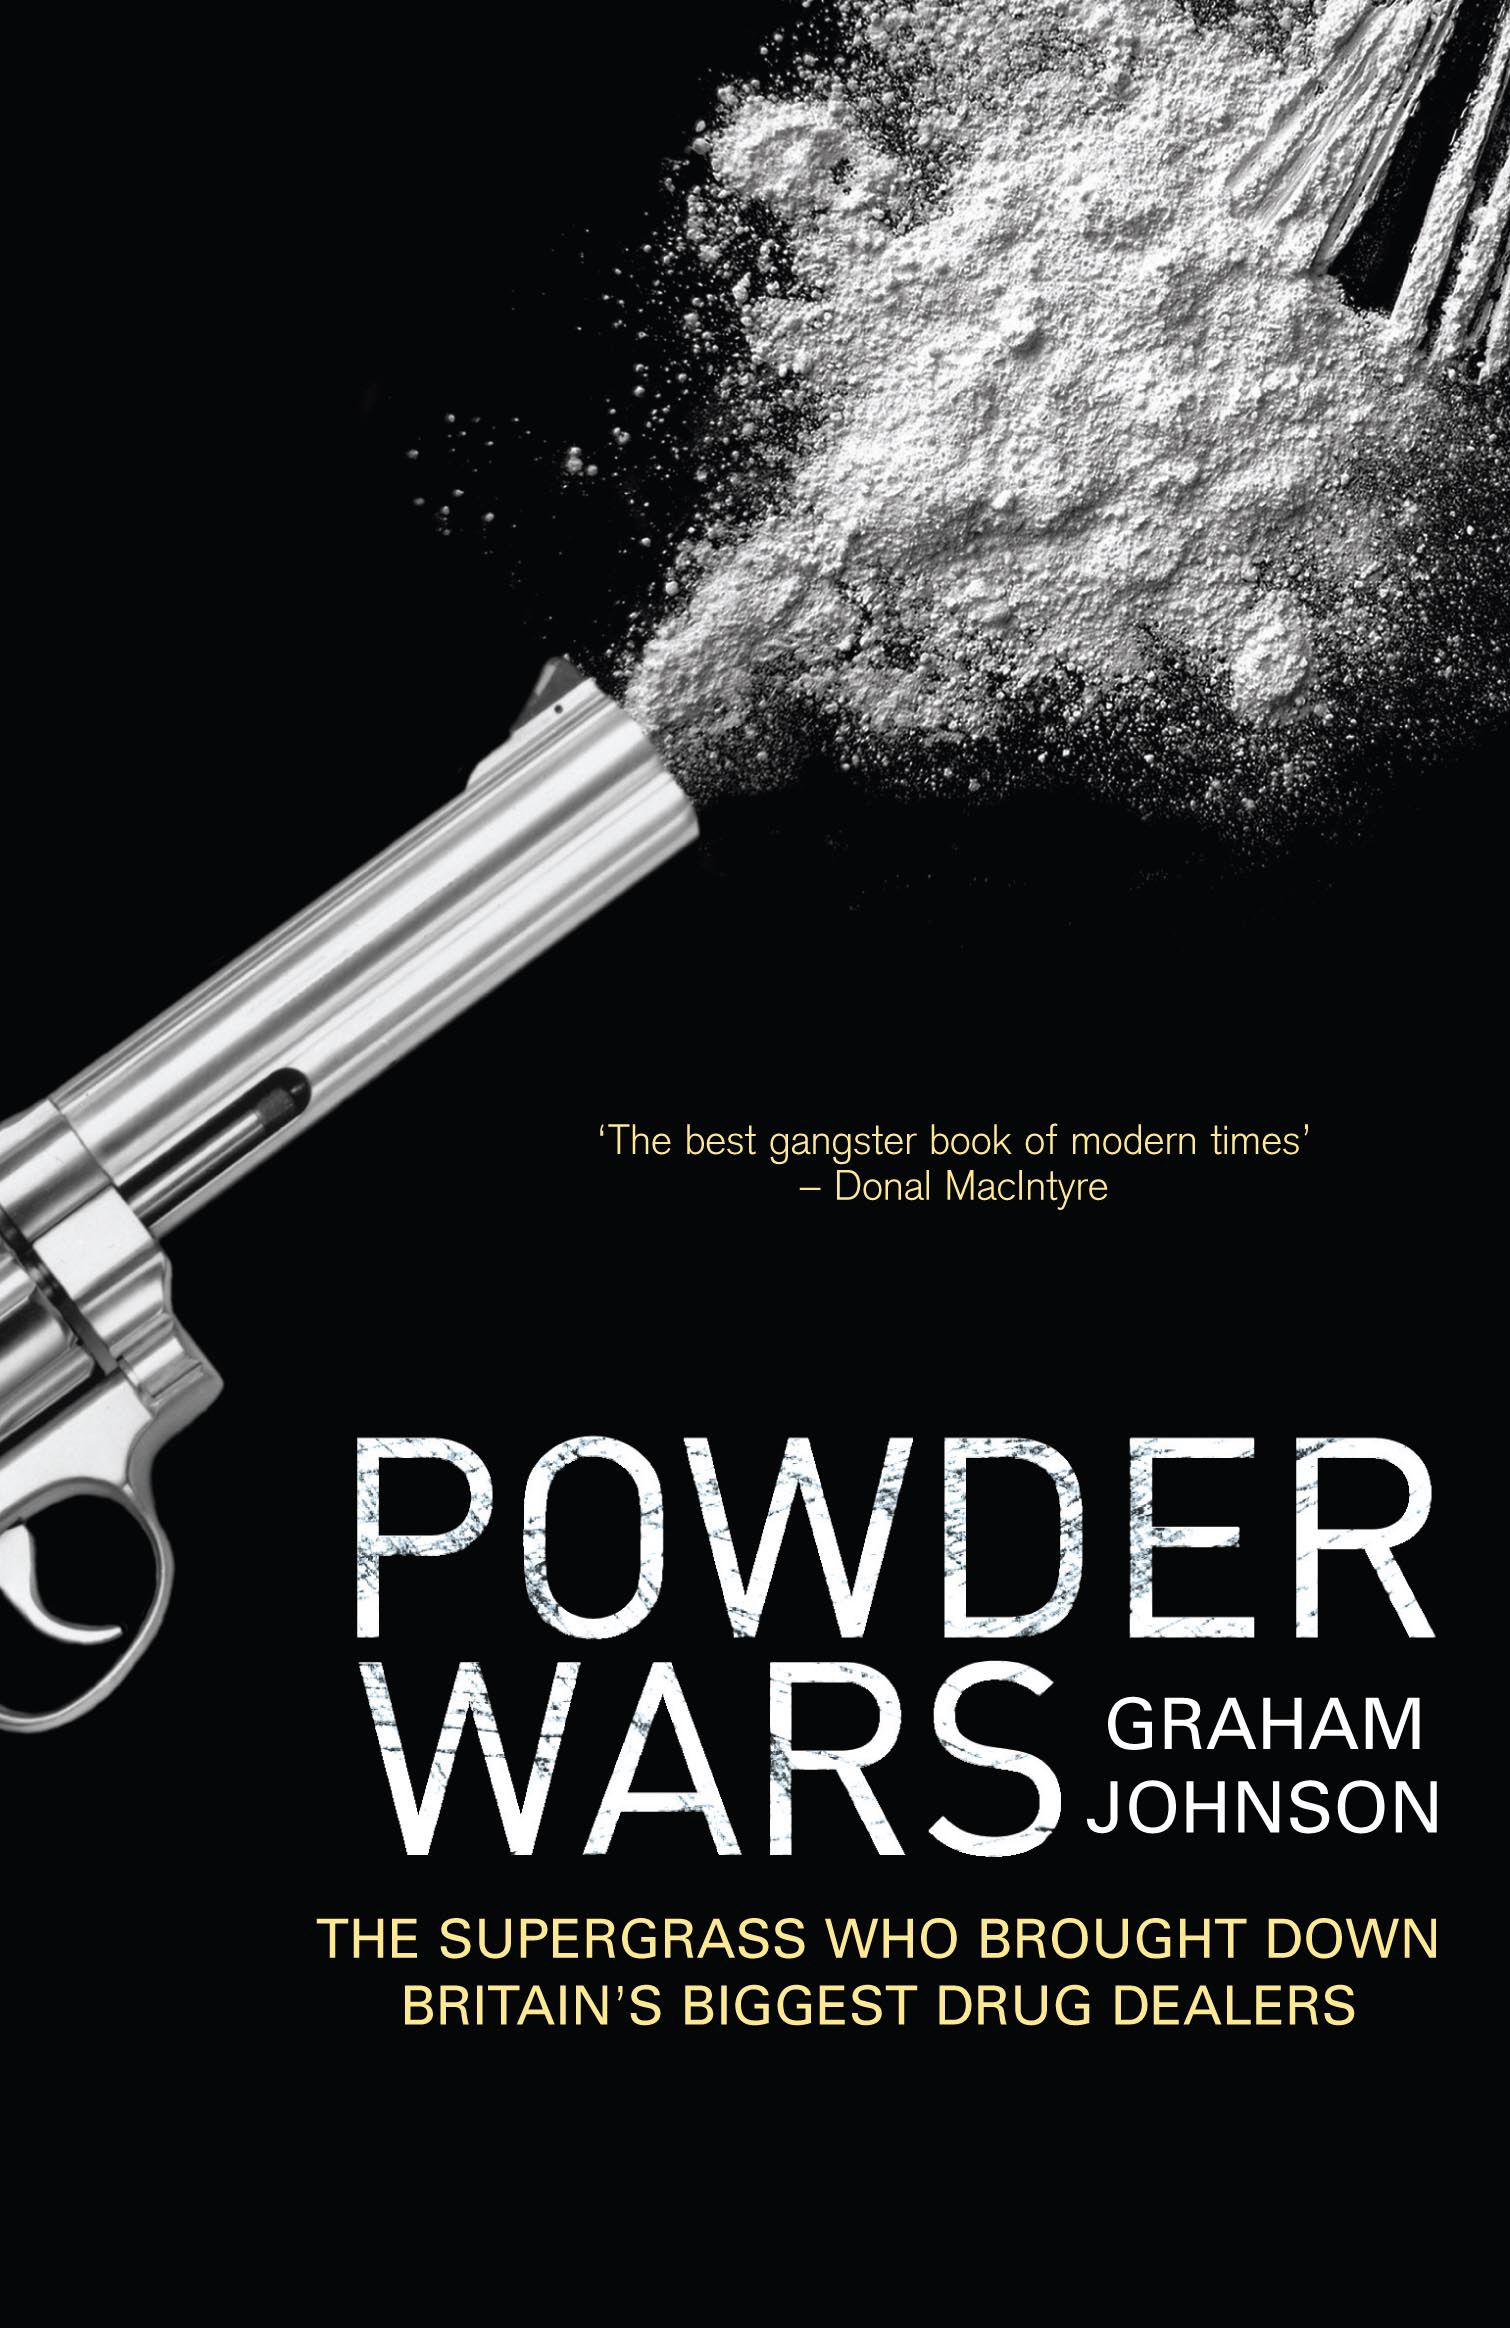 Powder Wars The Supergrass who Brought Down Britain's Biggest Drug Dealers